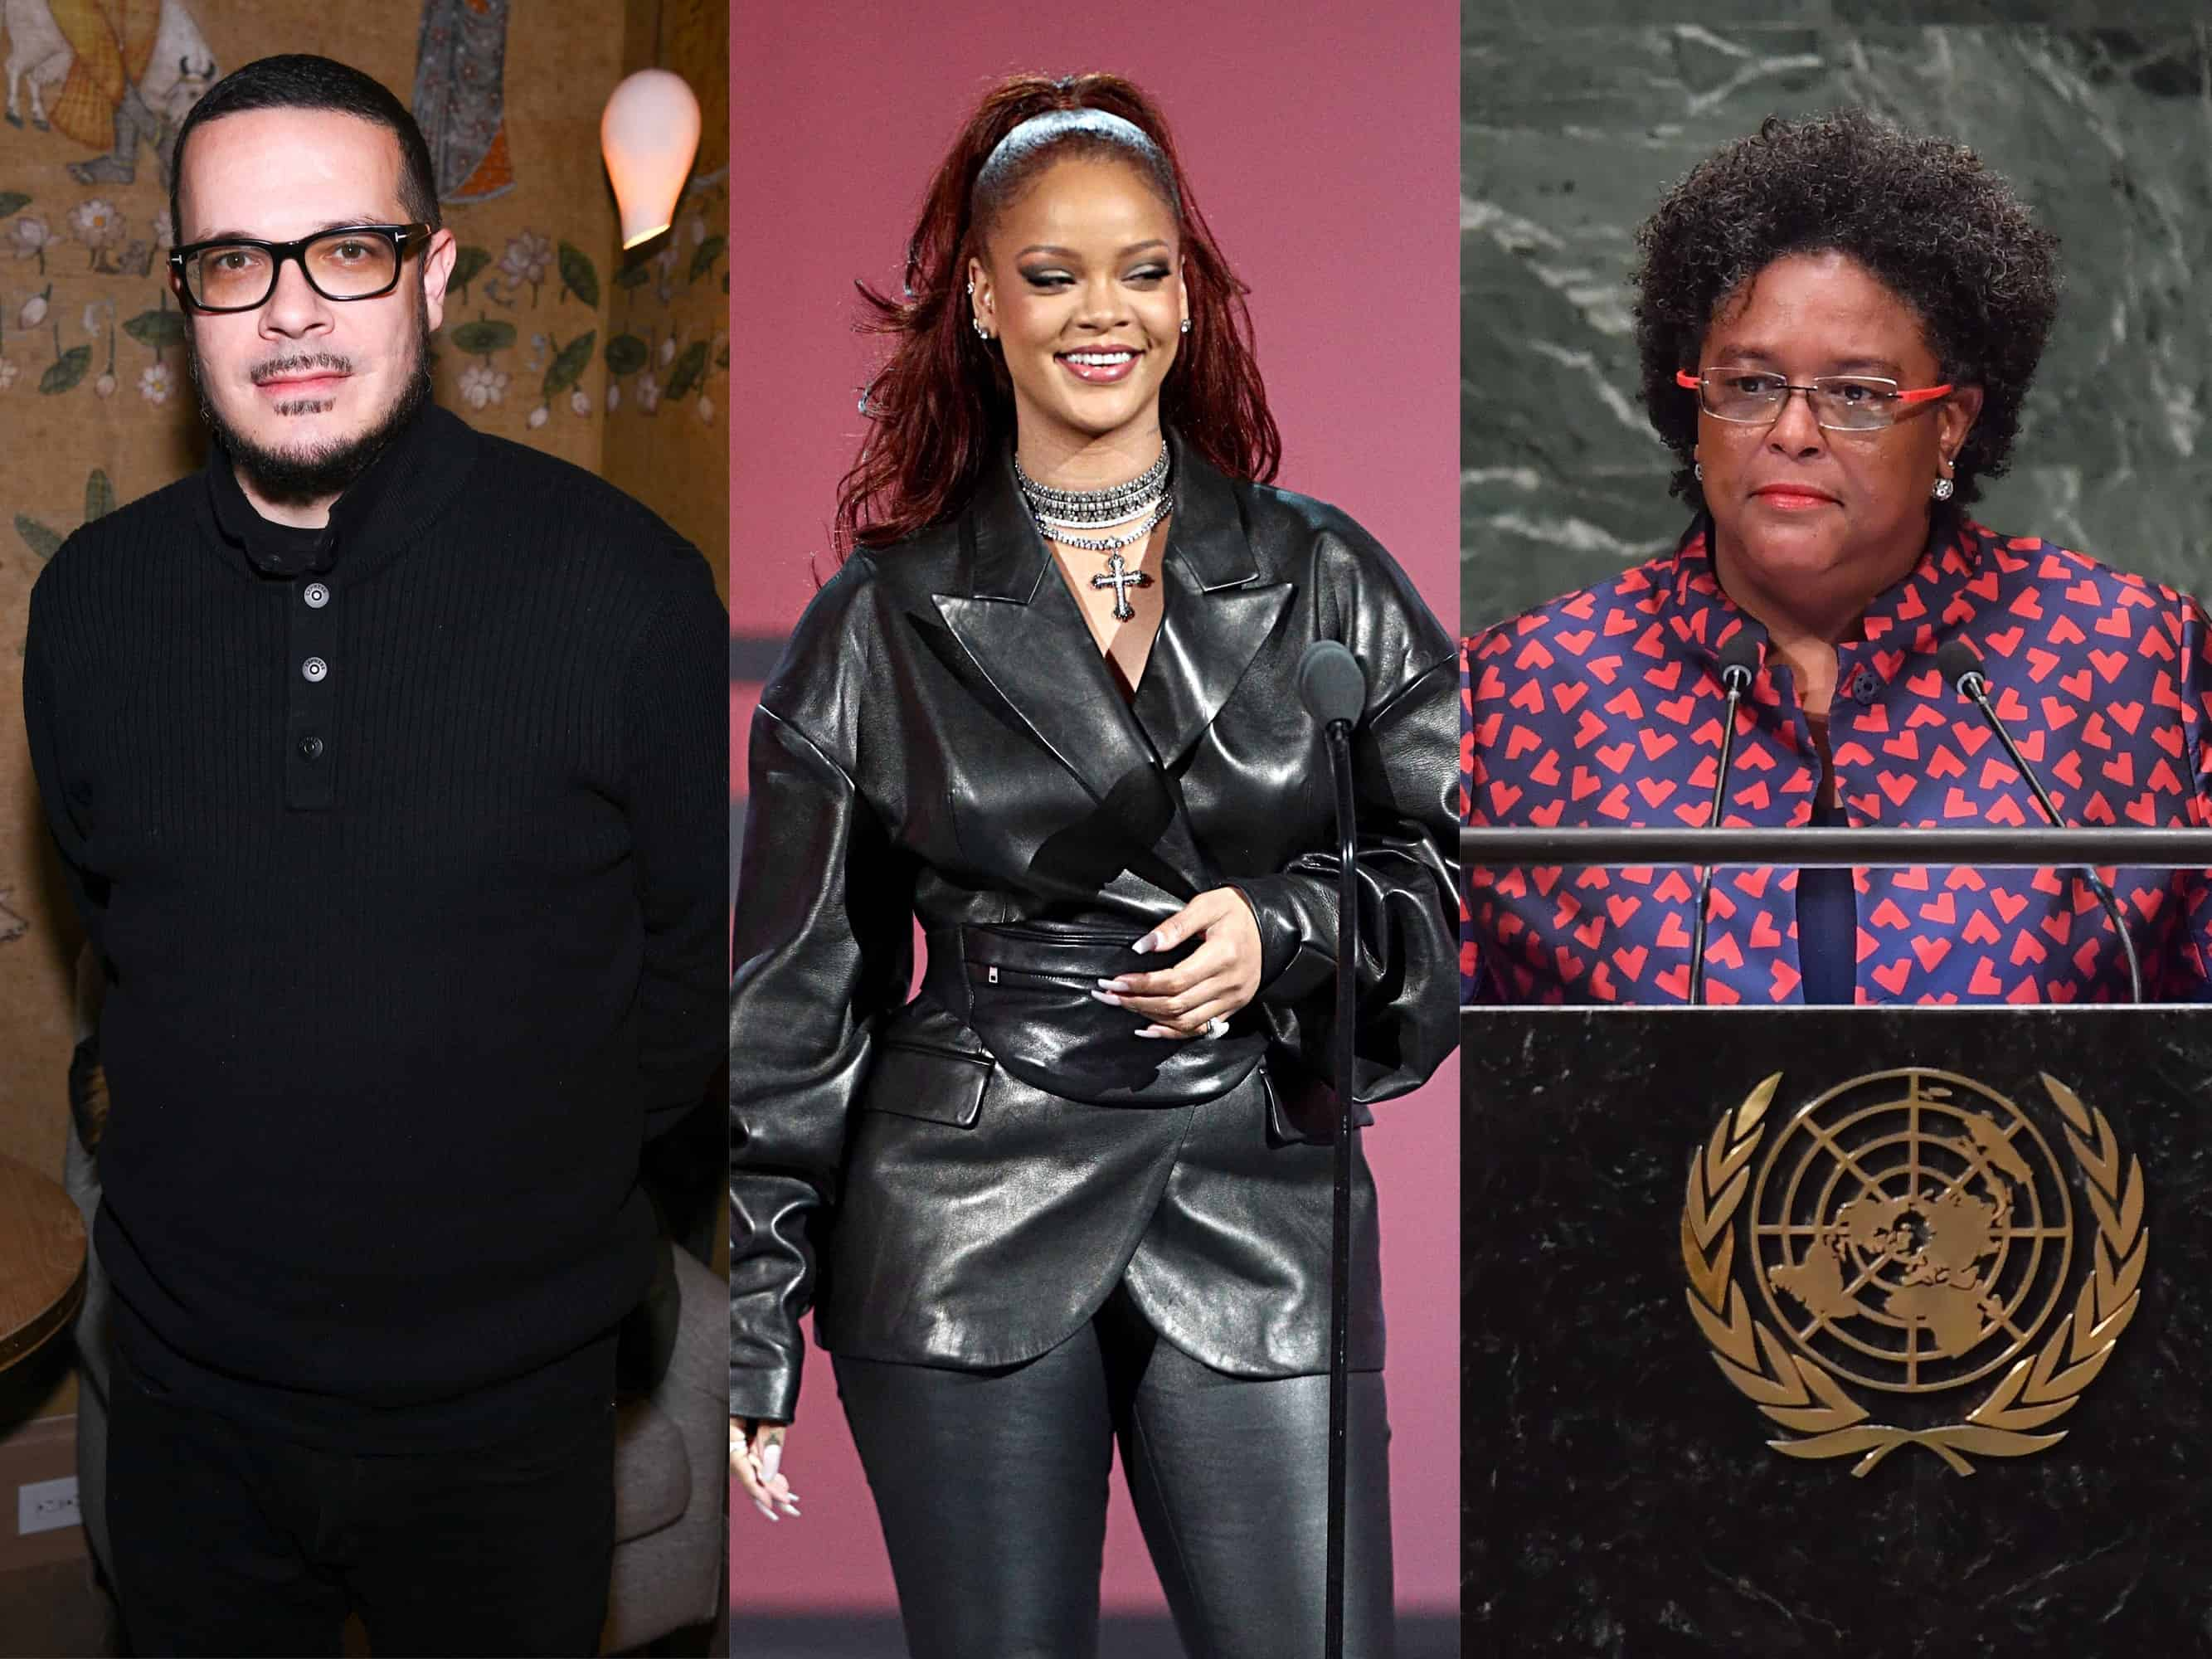 Rihanna's annual Diamond Ball is set to honor activist Shaun King and Barbados Prime Minister Mia Mottley at this year's ball